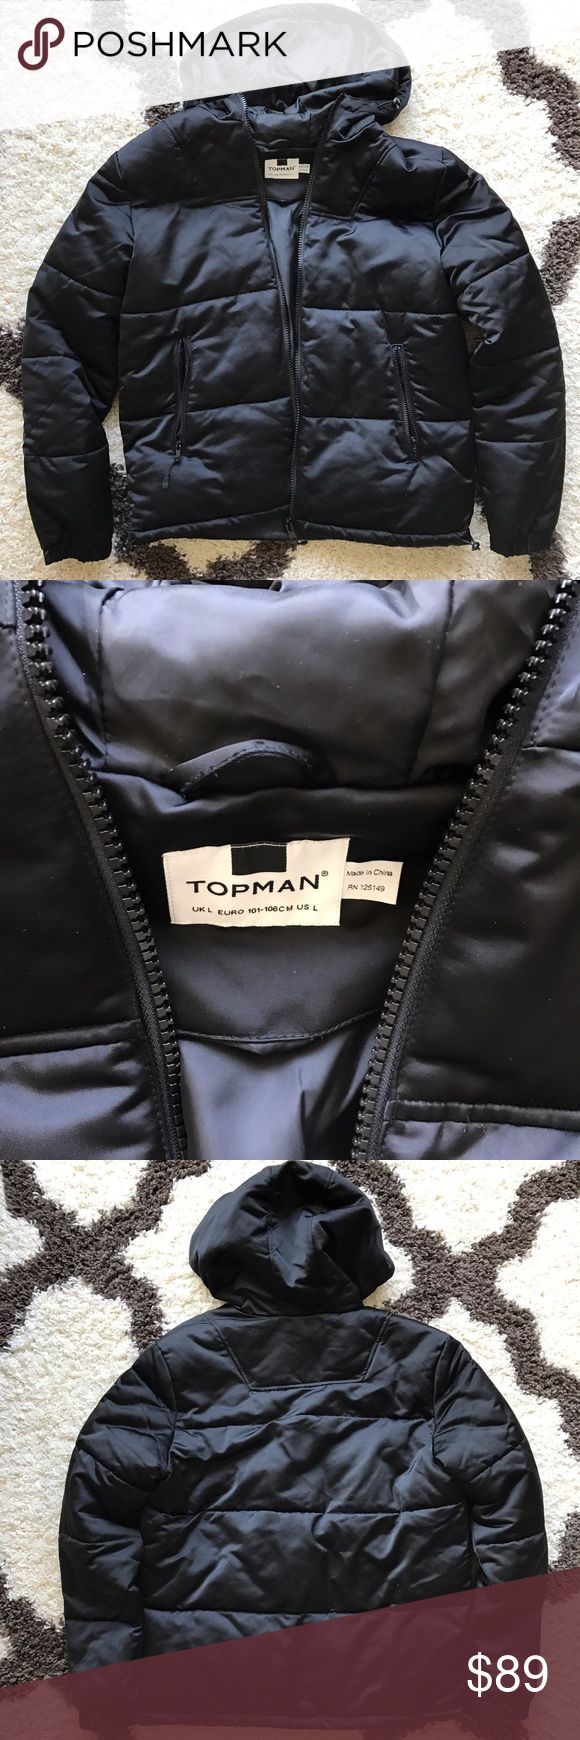 *NWOT* Topman Jacket New without tags! Hooded puffer jacket from Topman. Topman Jackets & Coats Puffers